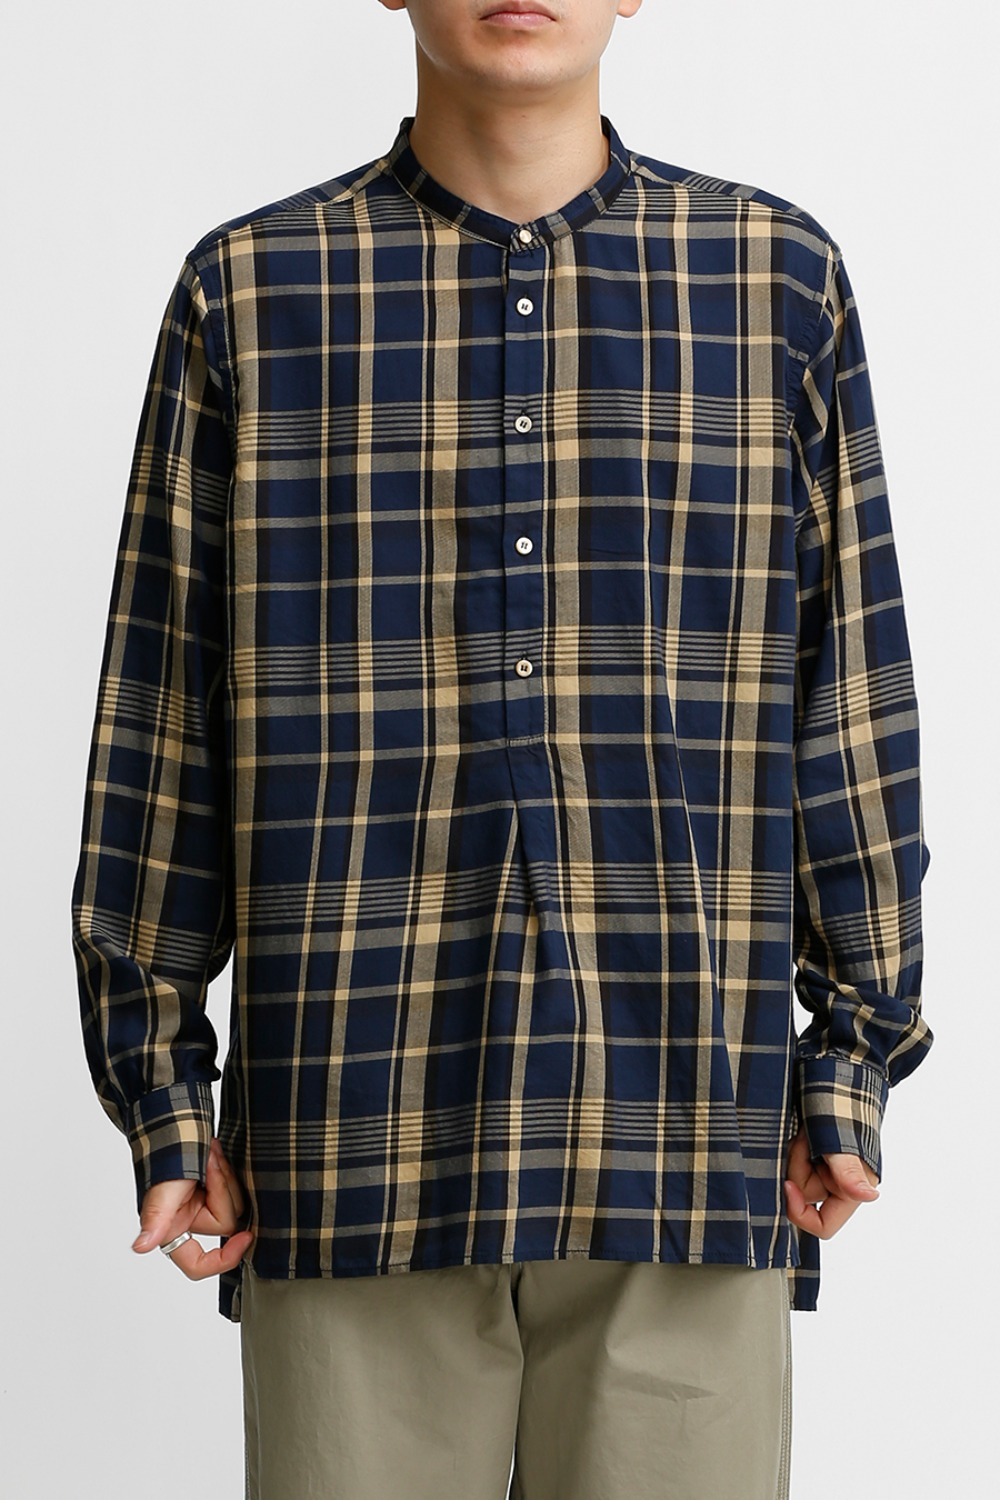 TUNIC SHIRT / NAVY & IVORY CHECK